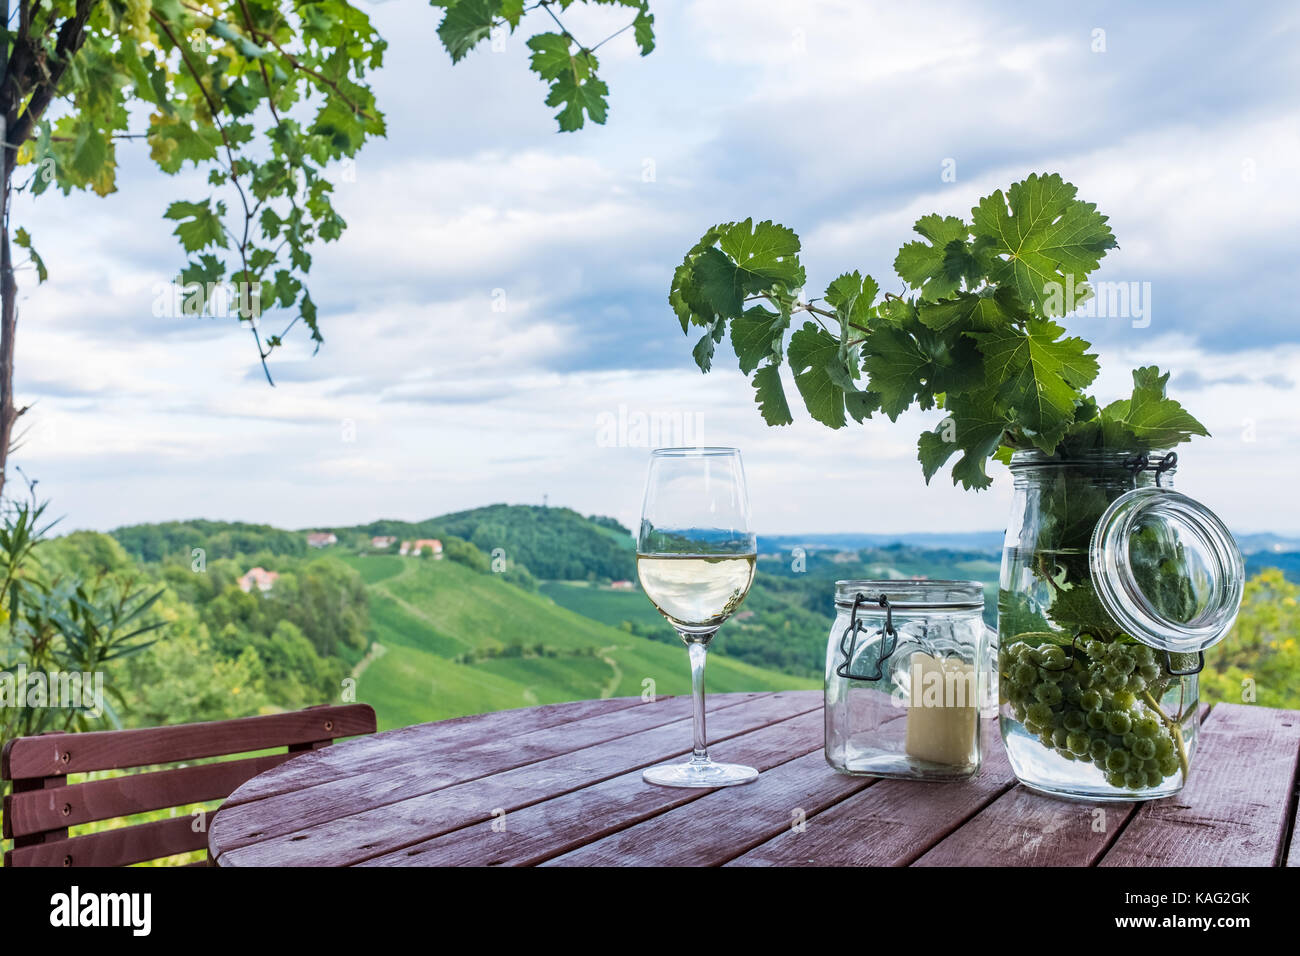 Glass white wine and jars with grapes and candle on wooden barrel near vineyard on south Styrian wine route in Austria - Stock Image